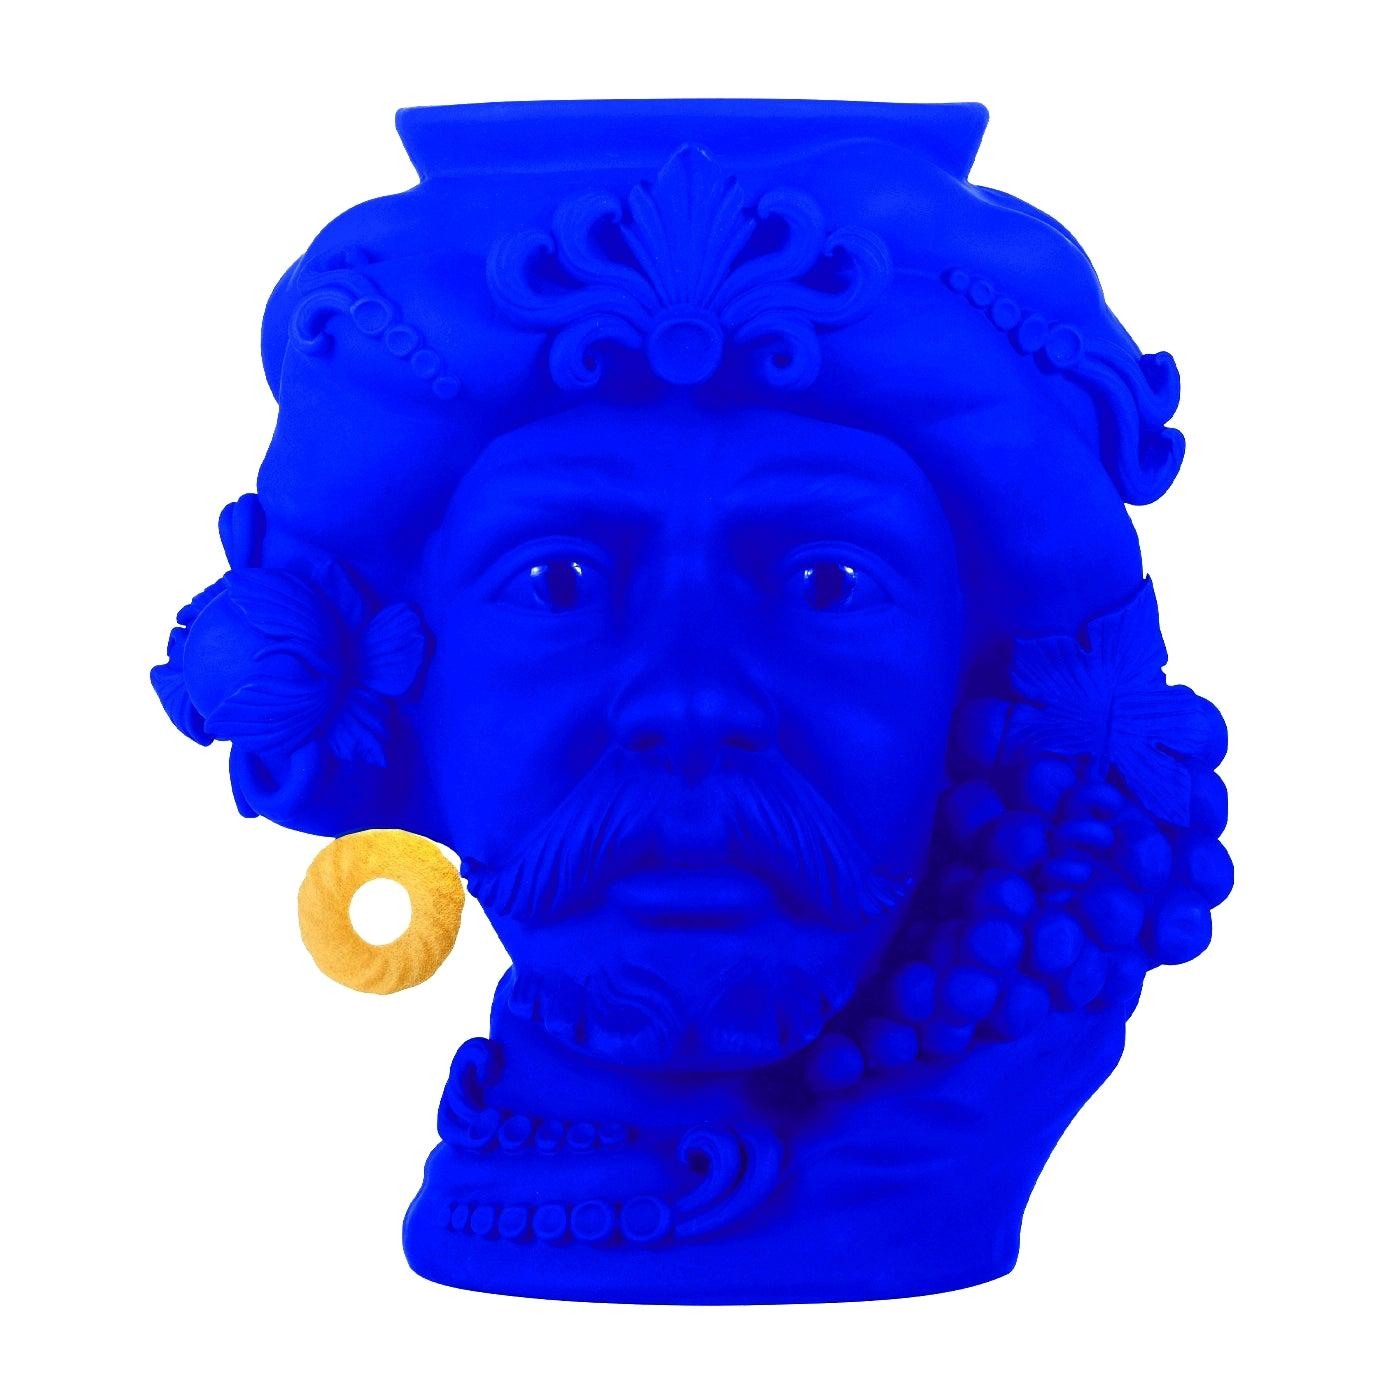 In Stock in Los Angeles, Yves Klein Blue & Gold Pirate Terracotta Vase